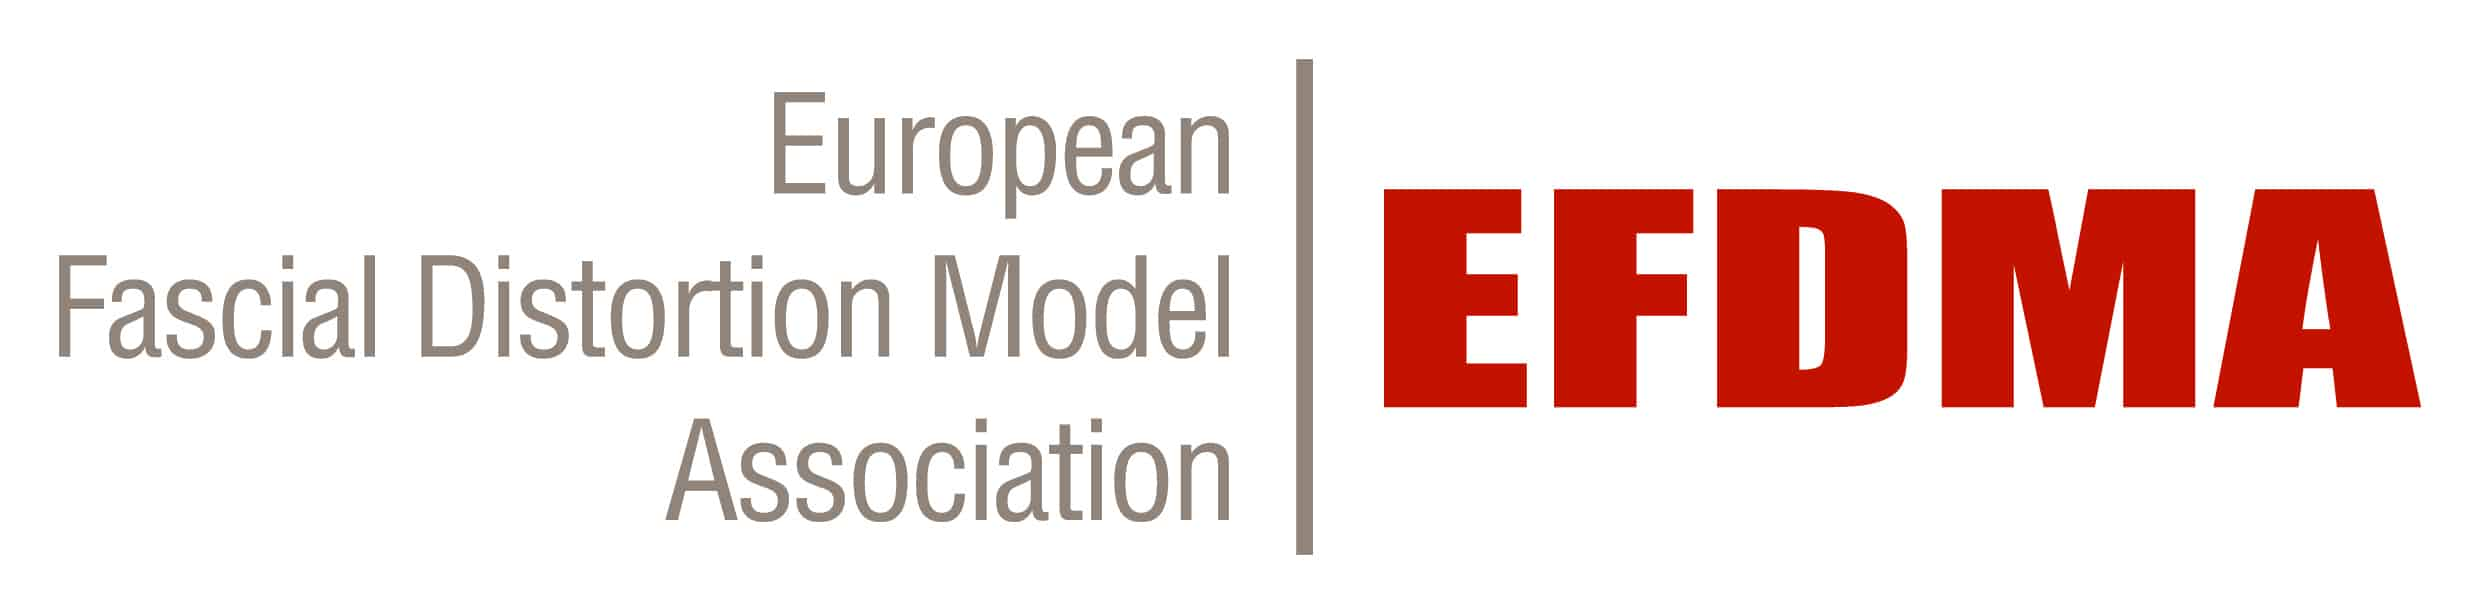 EFDMA | European Fascial Distortion Model Association